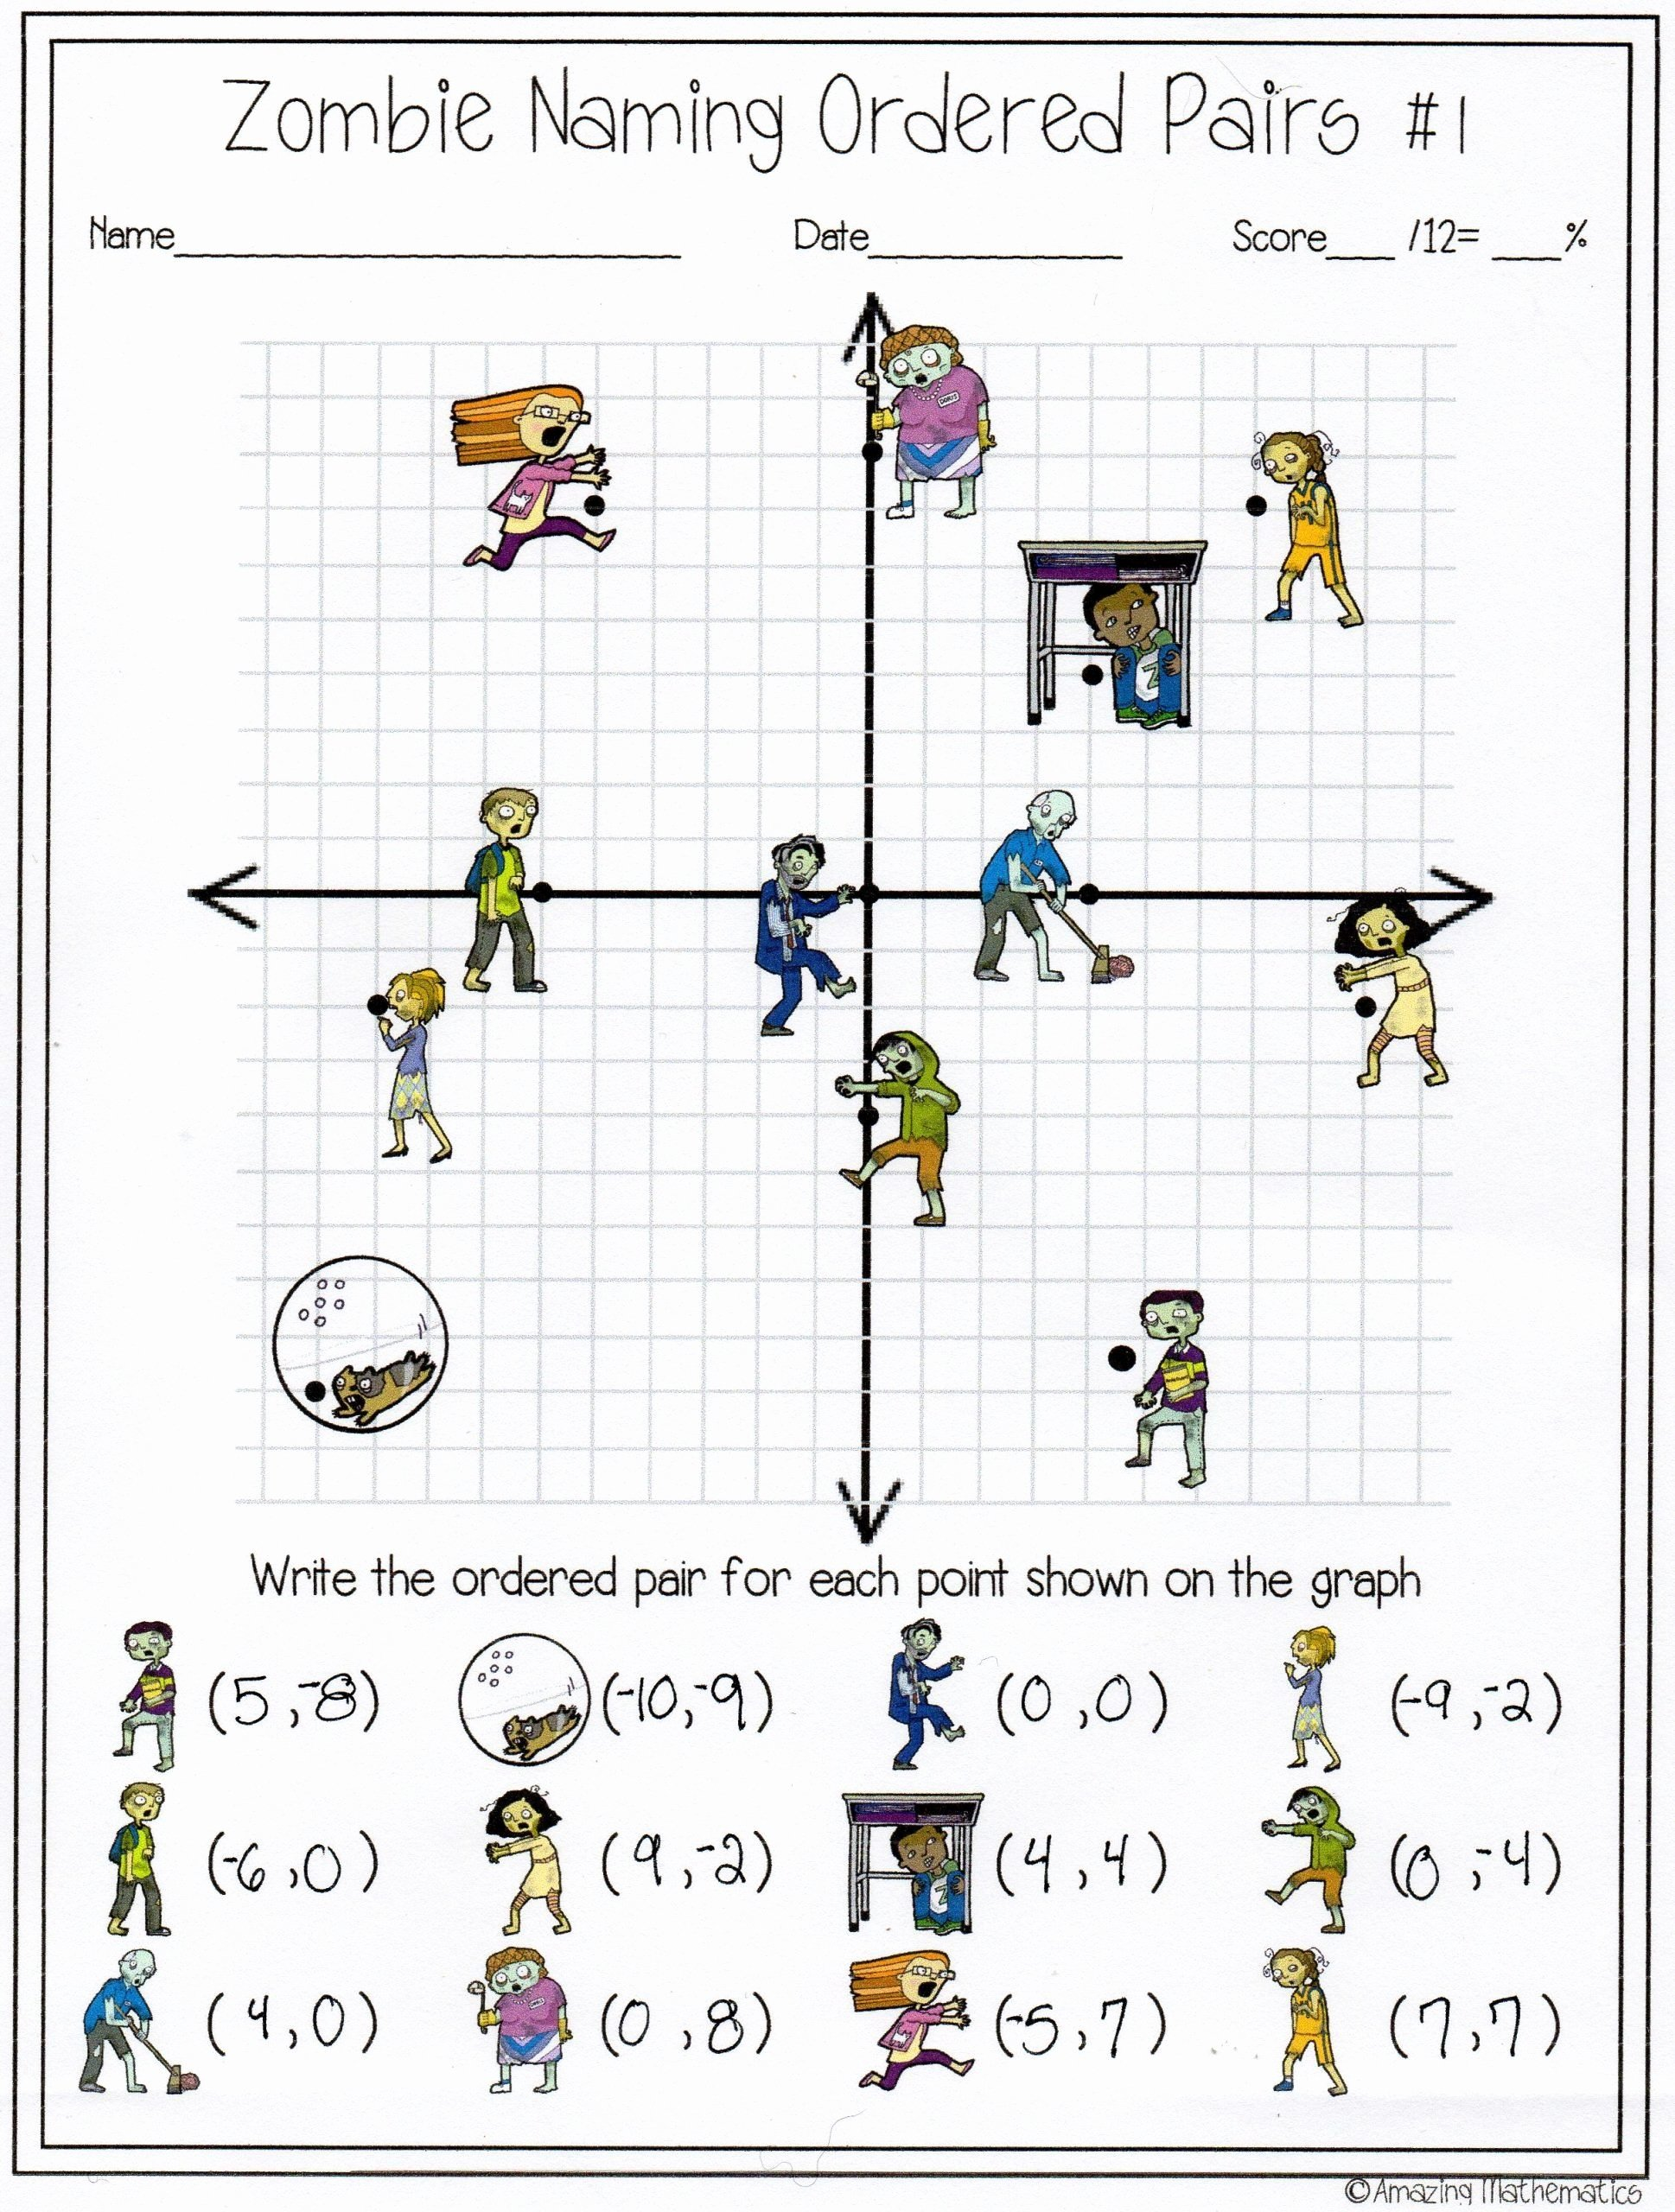 Distance and Midpoint Worksheet Answers top Distance and Midpoint Worksheet Answers Zombie Naming